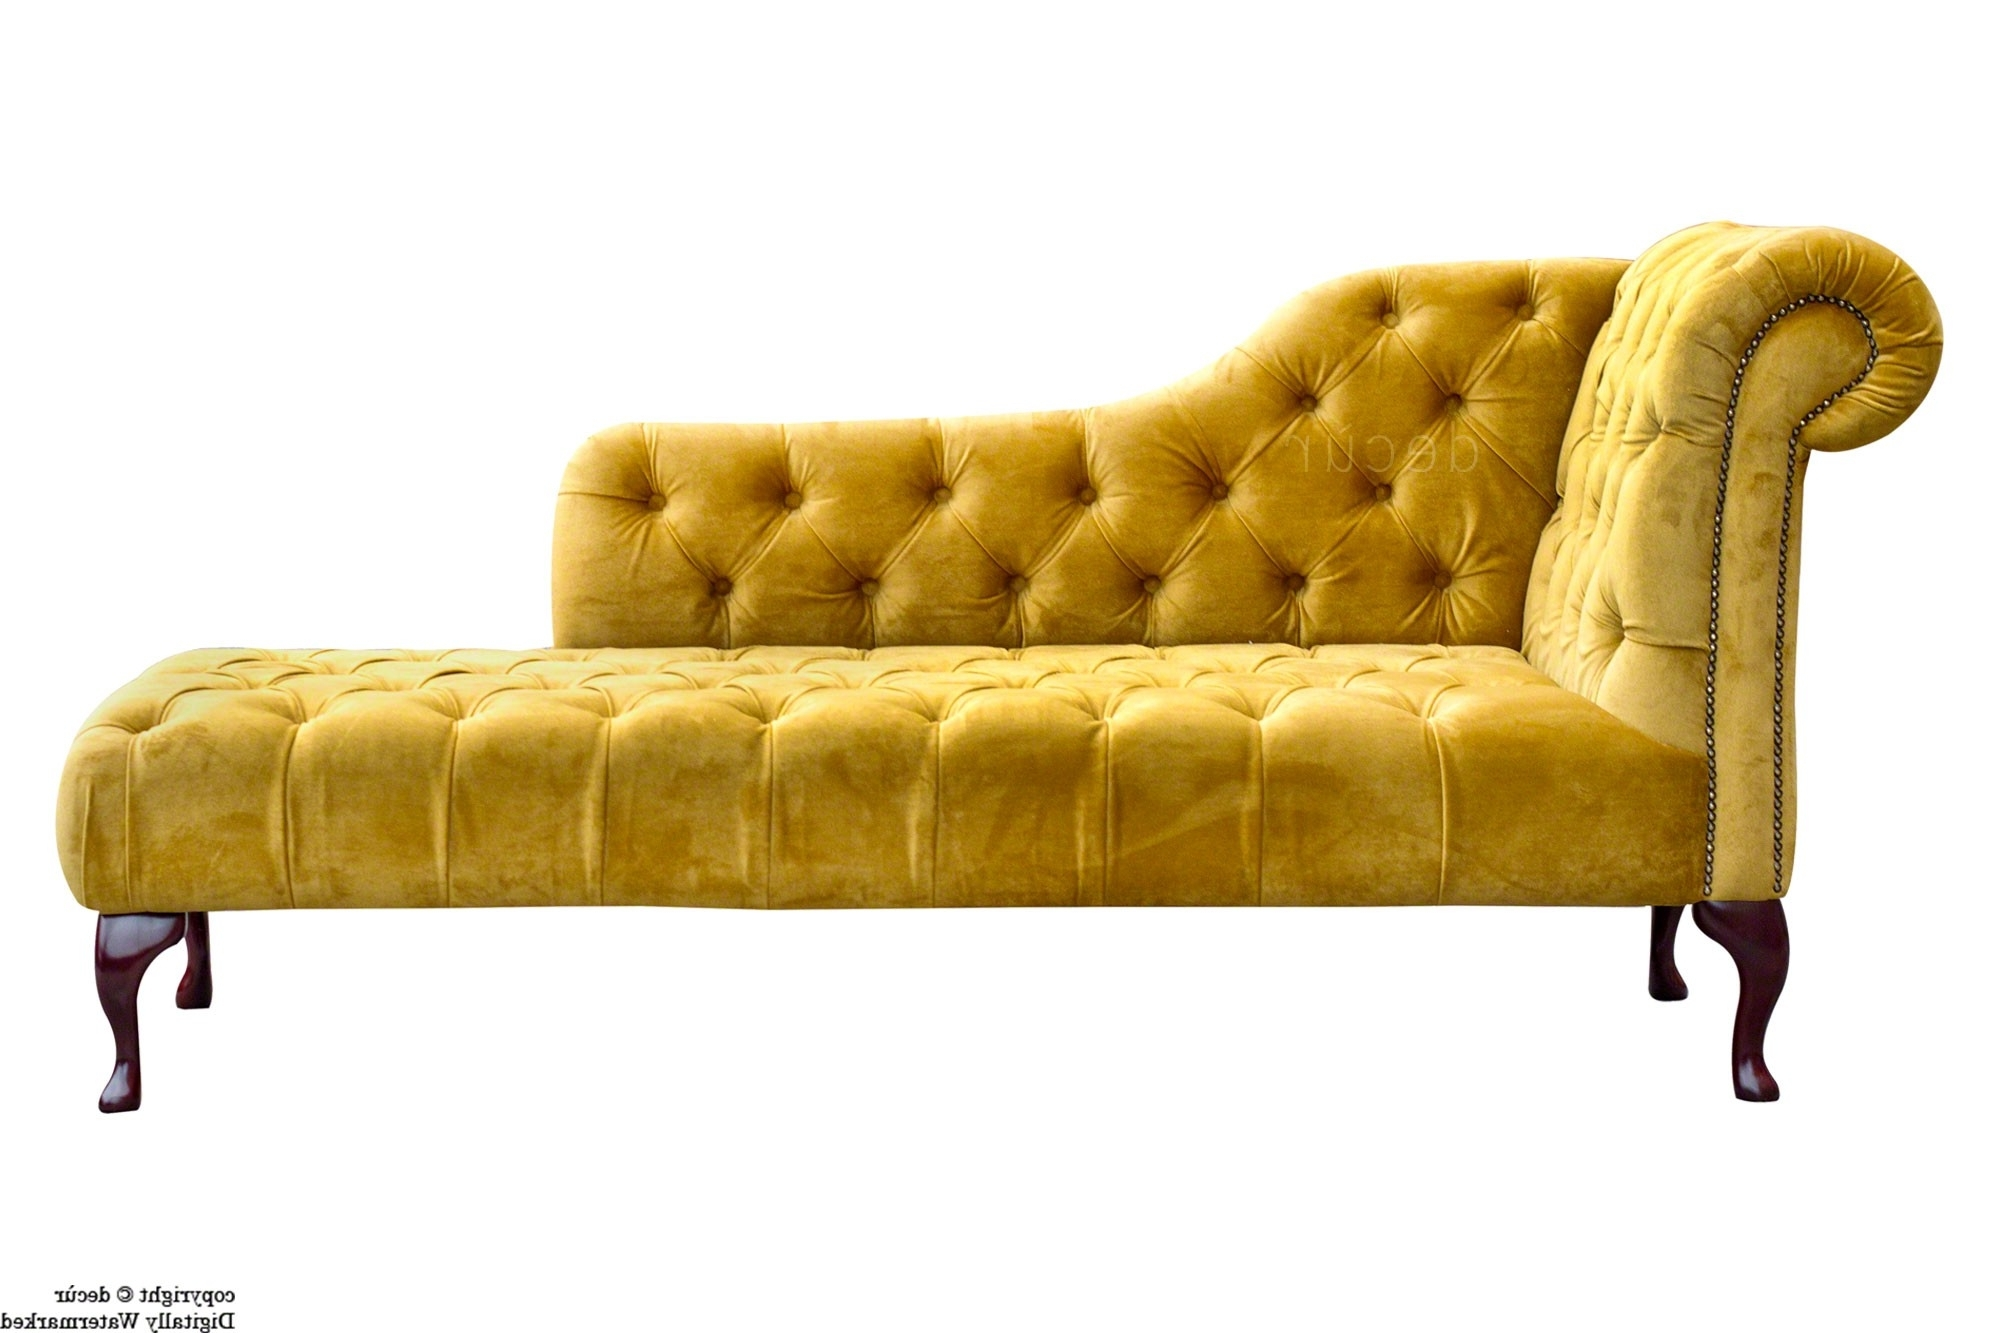 Widely Used Bespoke Designer Sofas, Footstools, Bespoke Footstools, Bespoke With Gold Chaise Lounges (View 15 of 15)